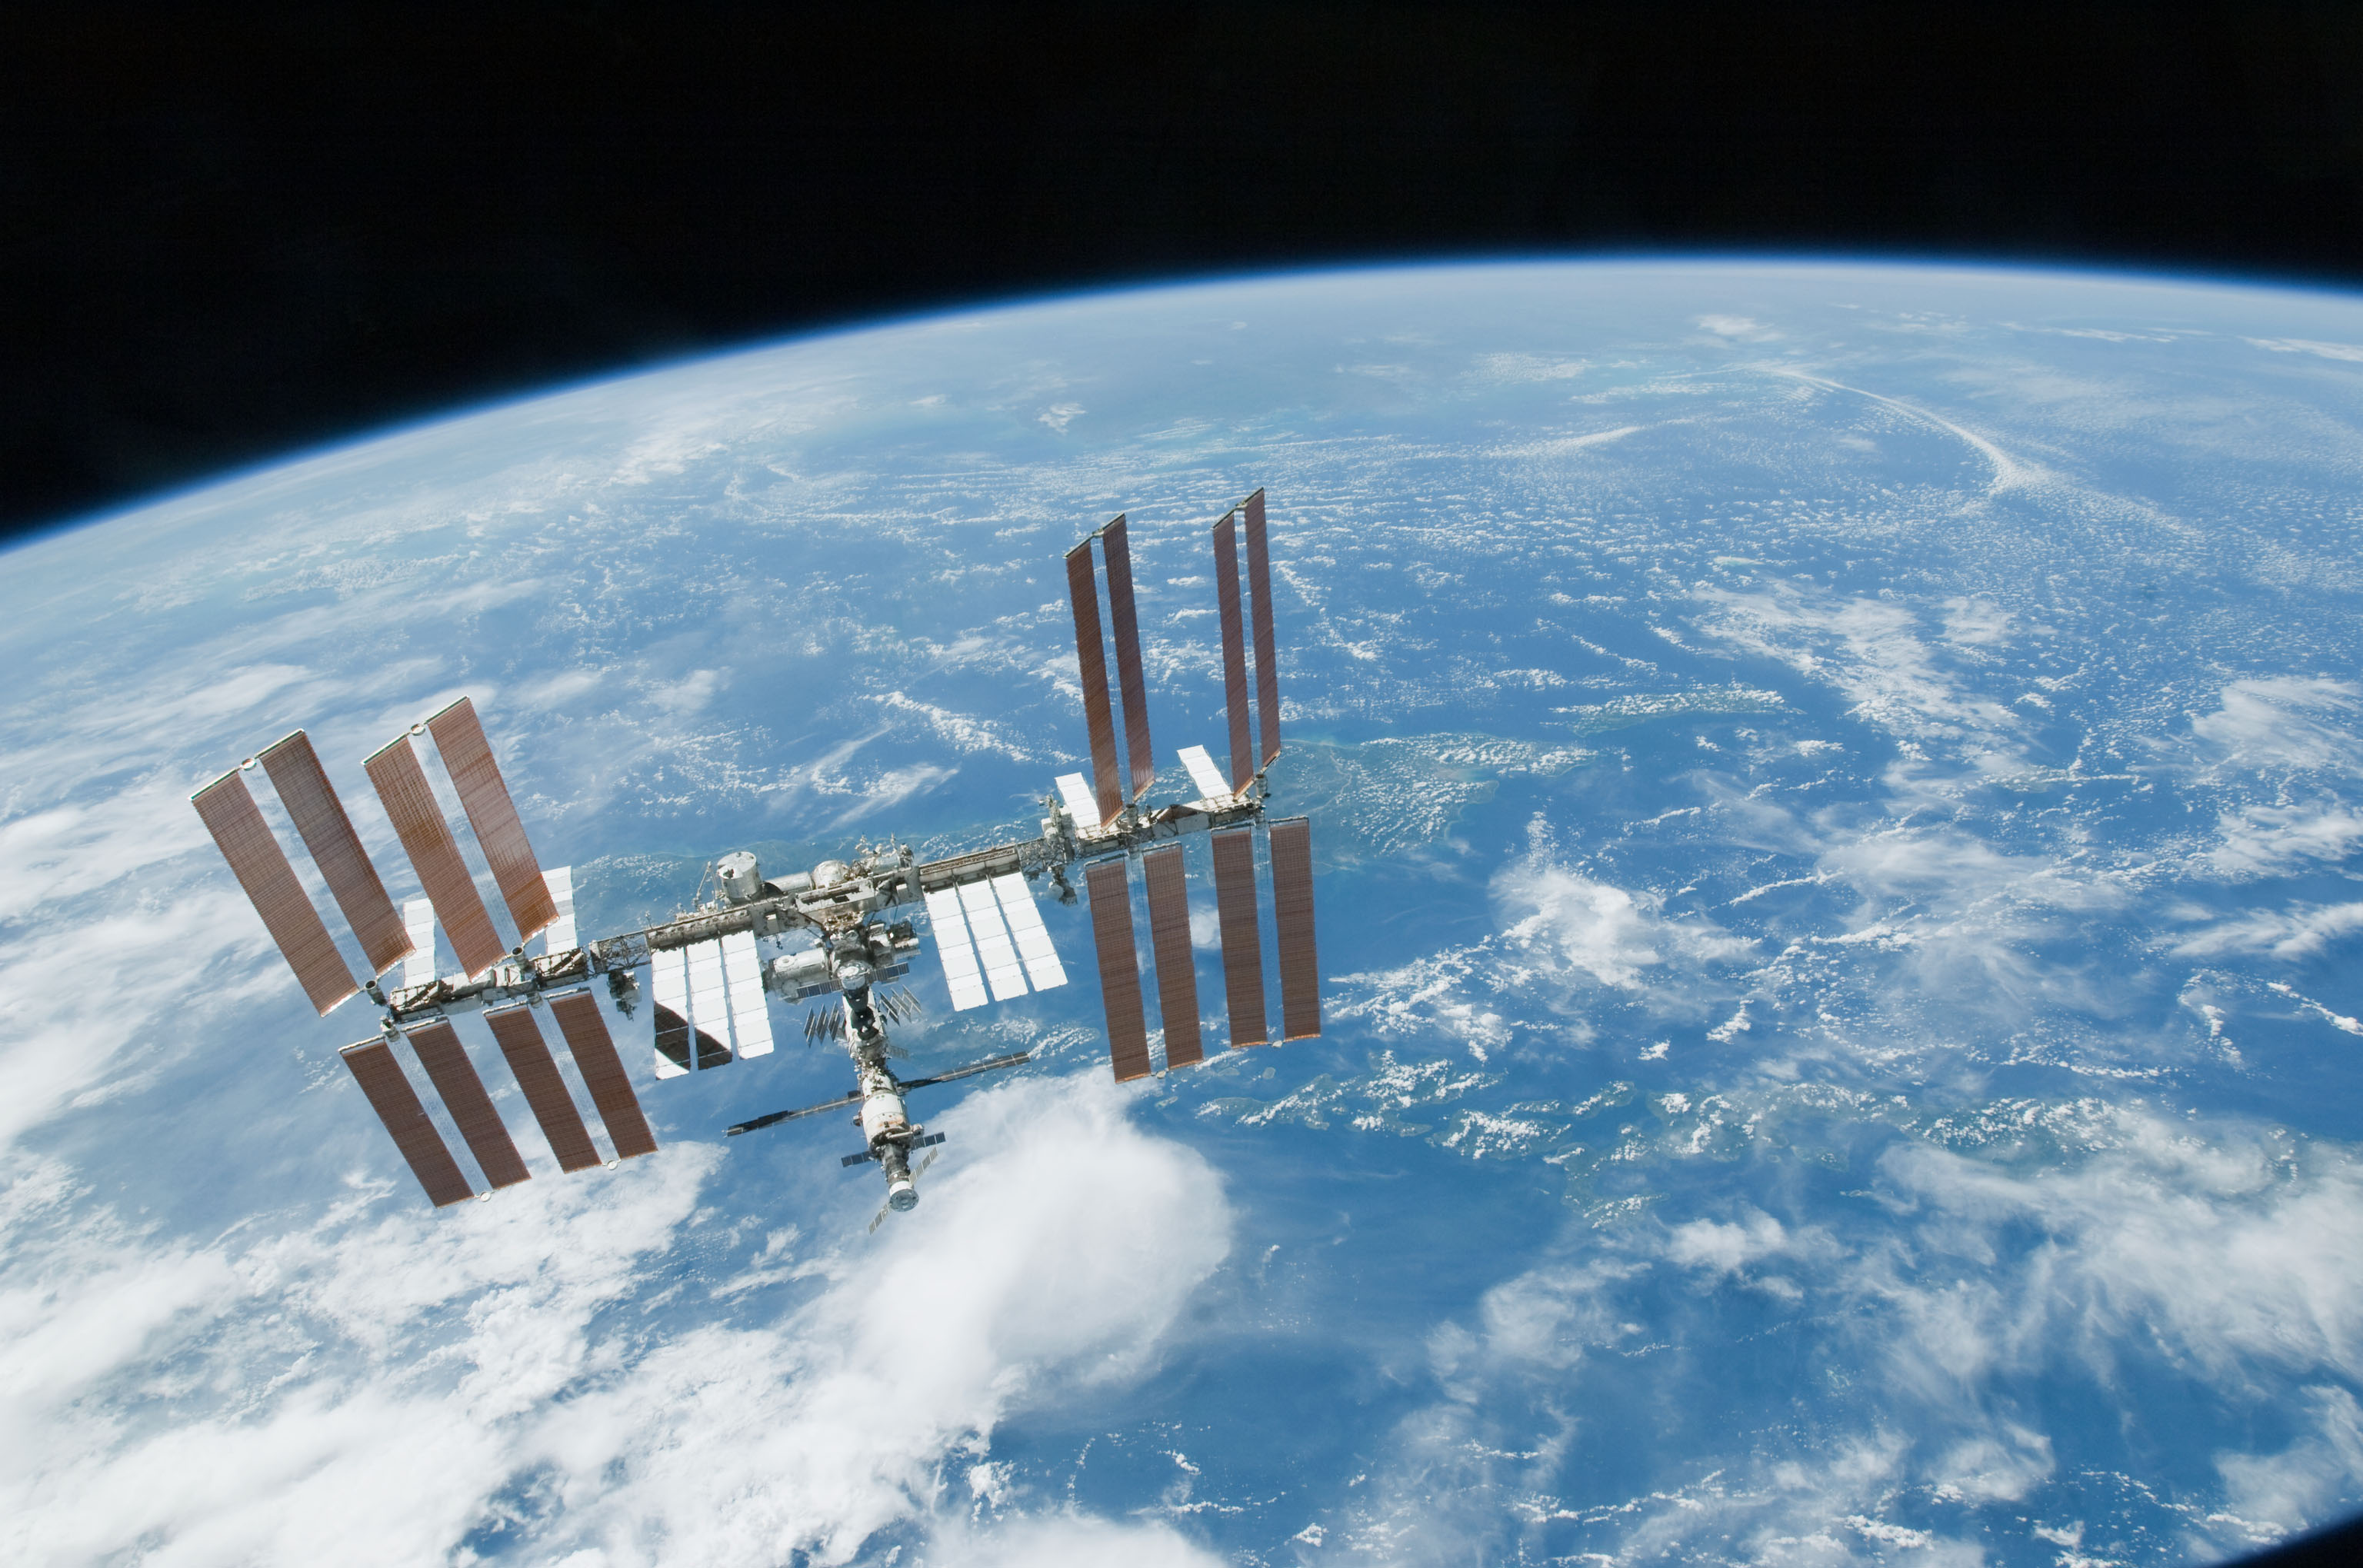 Space Station Over Earth